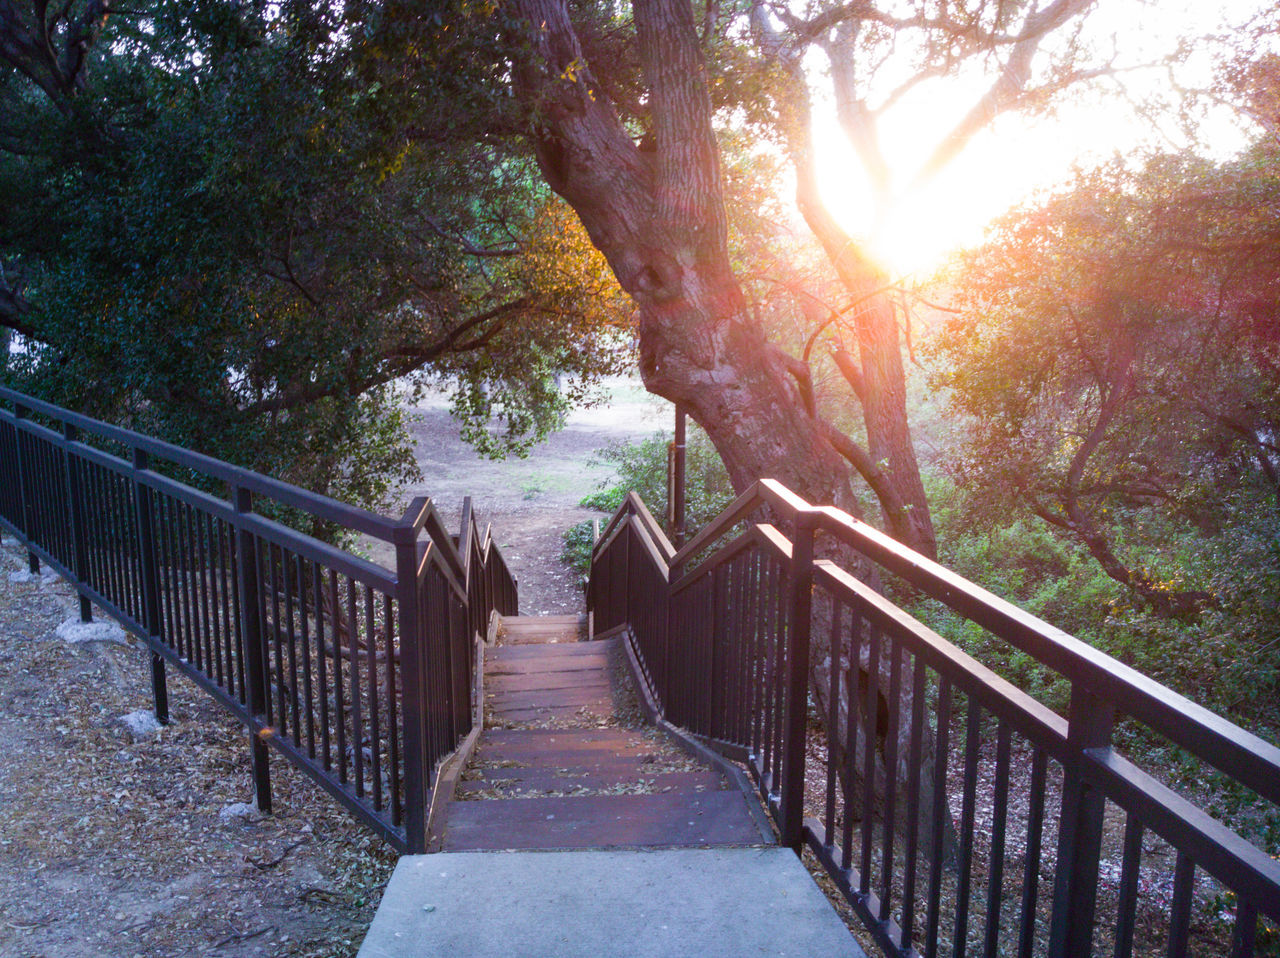 Railing Tree The Way Forward Footbridge Outdoors Bridge - Man Made Structure Day Nature Sunlight Beauty In Nature No People Sky